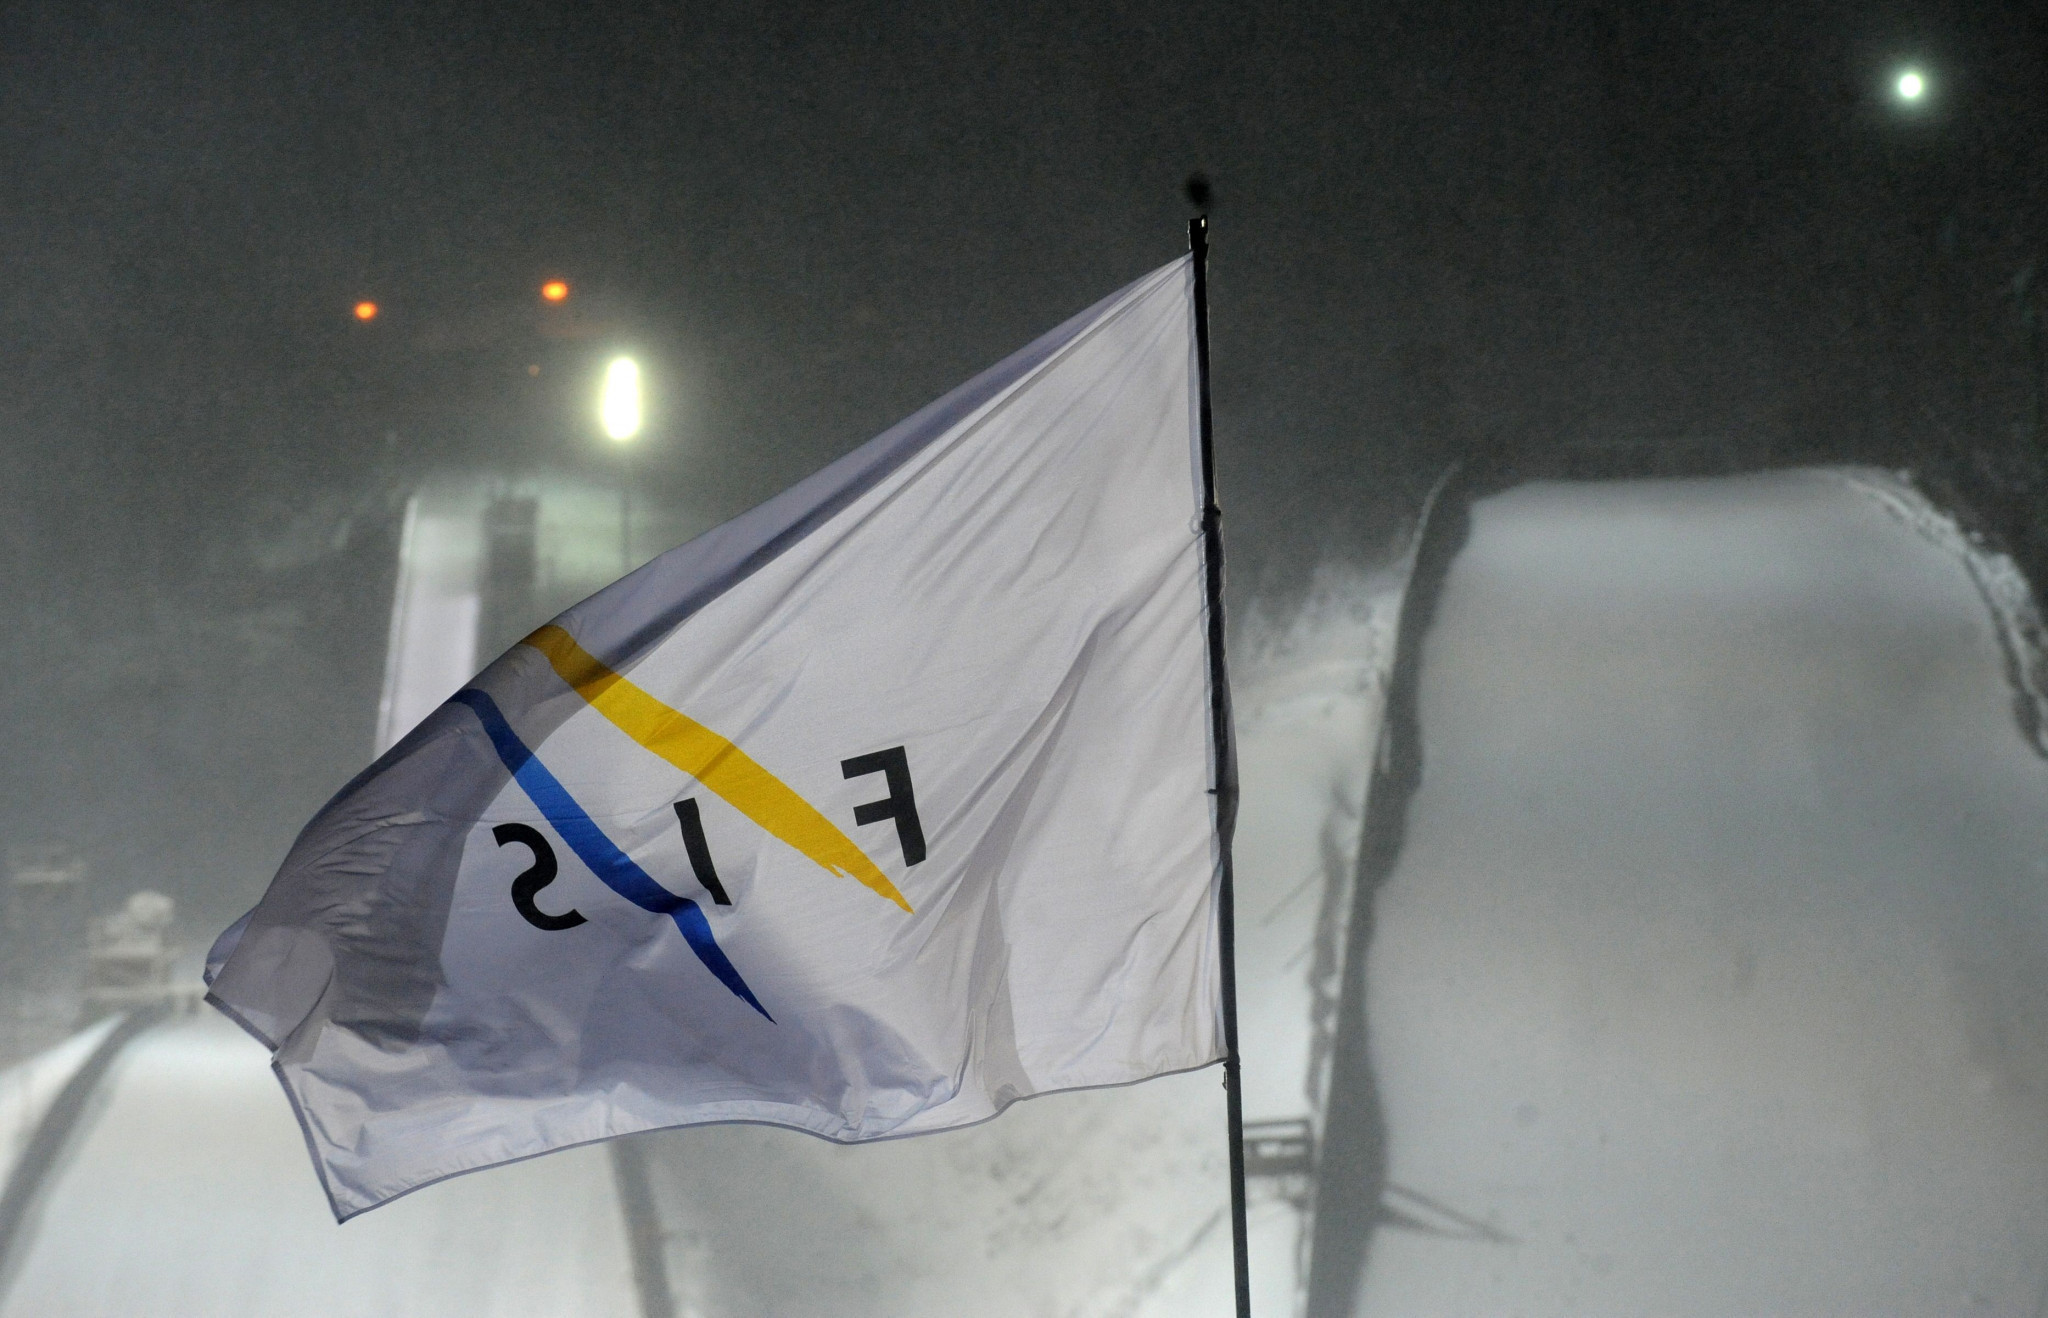 The FIS Congress has been postponed until June 5 in 2021 ©Getty Images